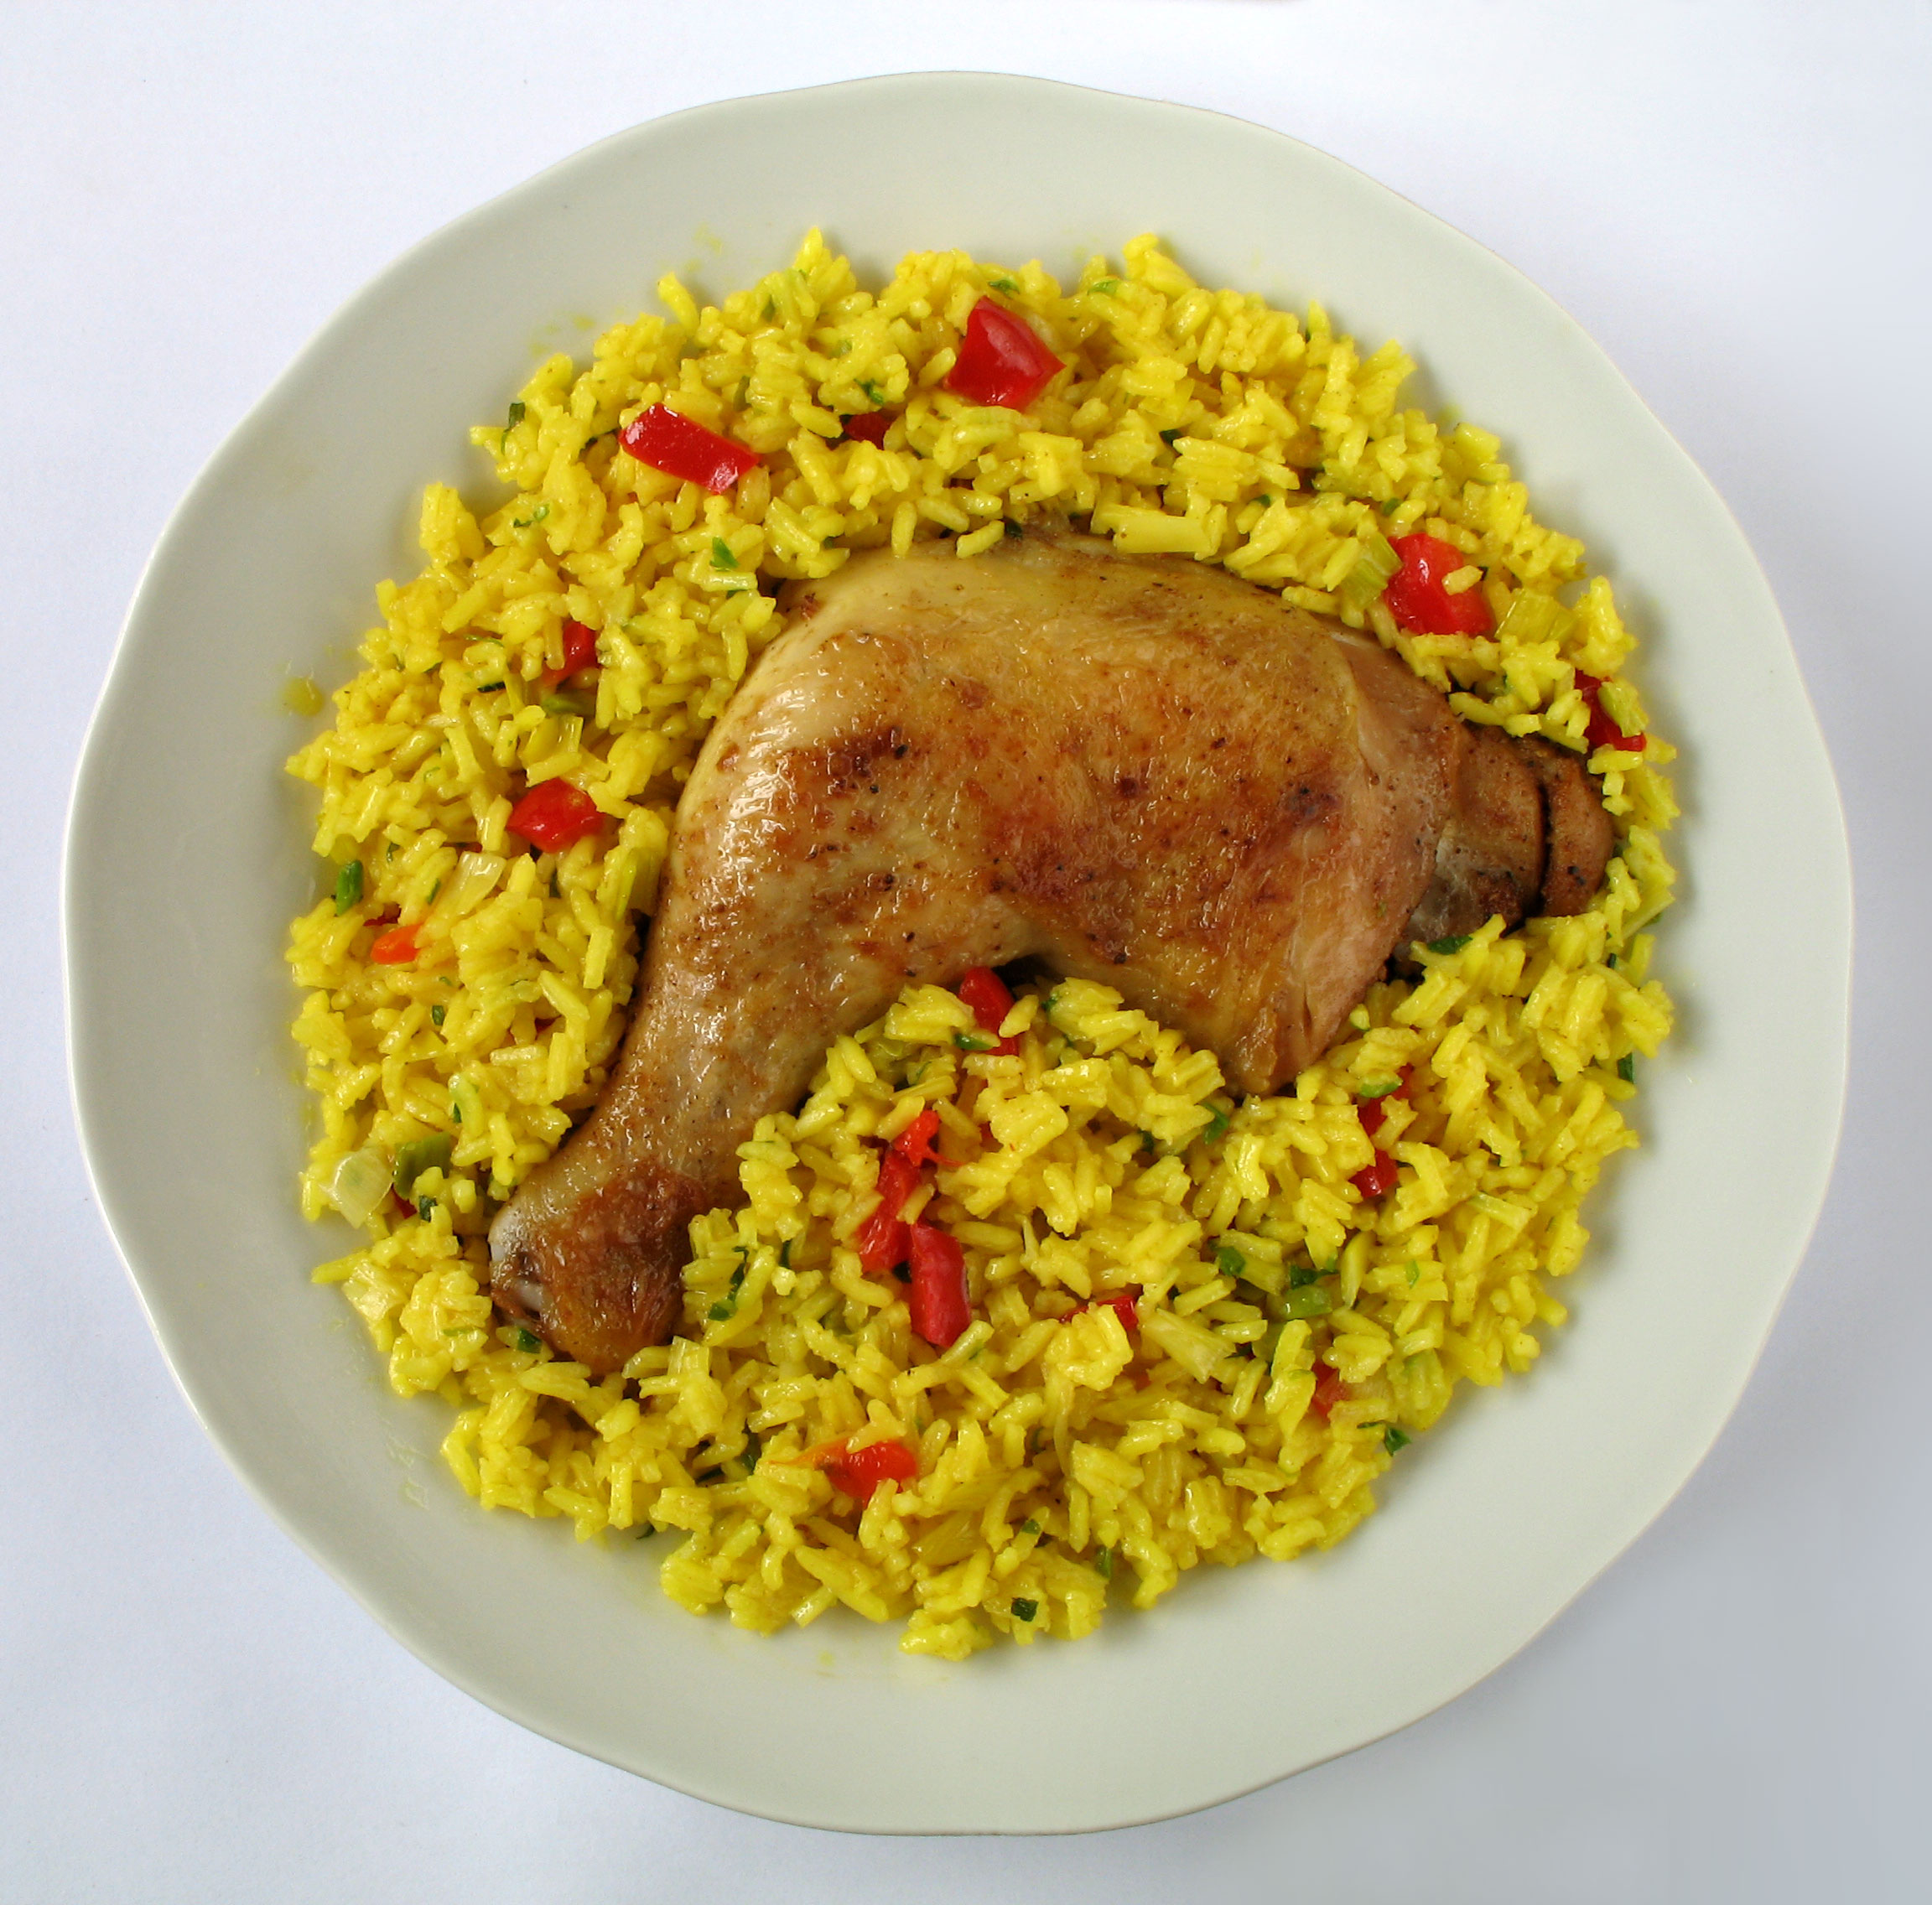 File:Arroz-con-Pollo.jpg - Wikipedia, the free encyclopedia